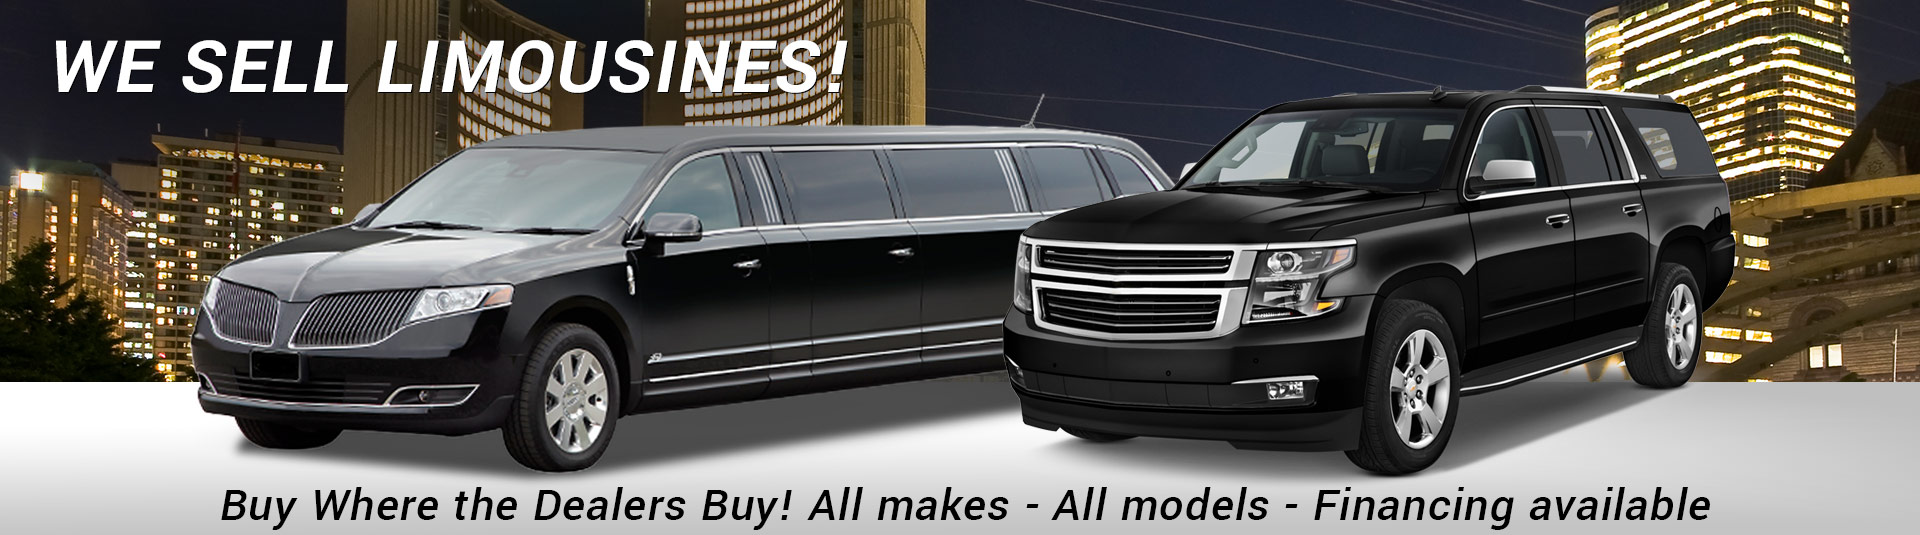 We sell limousines!